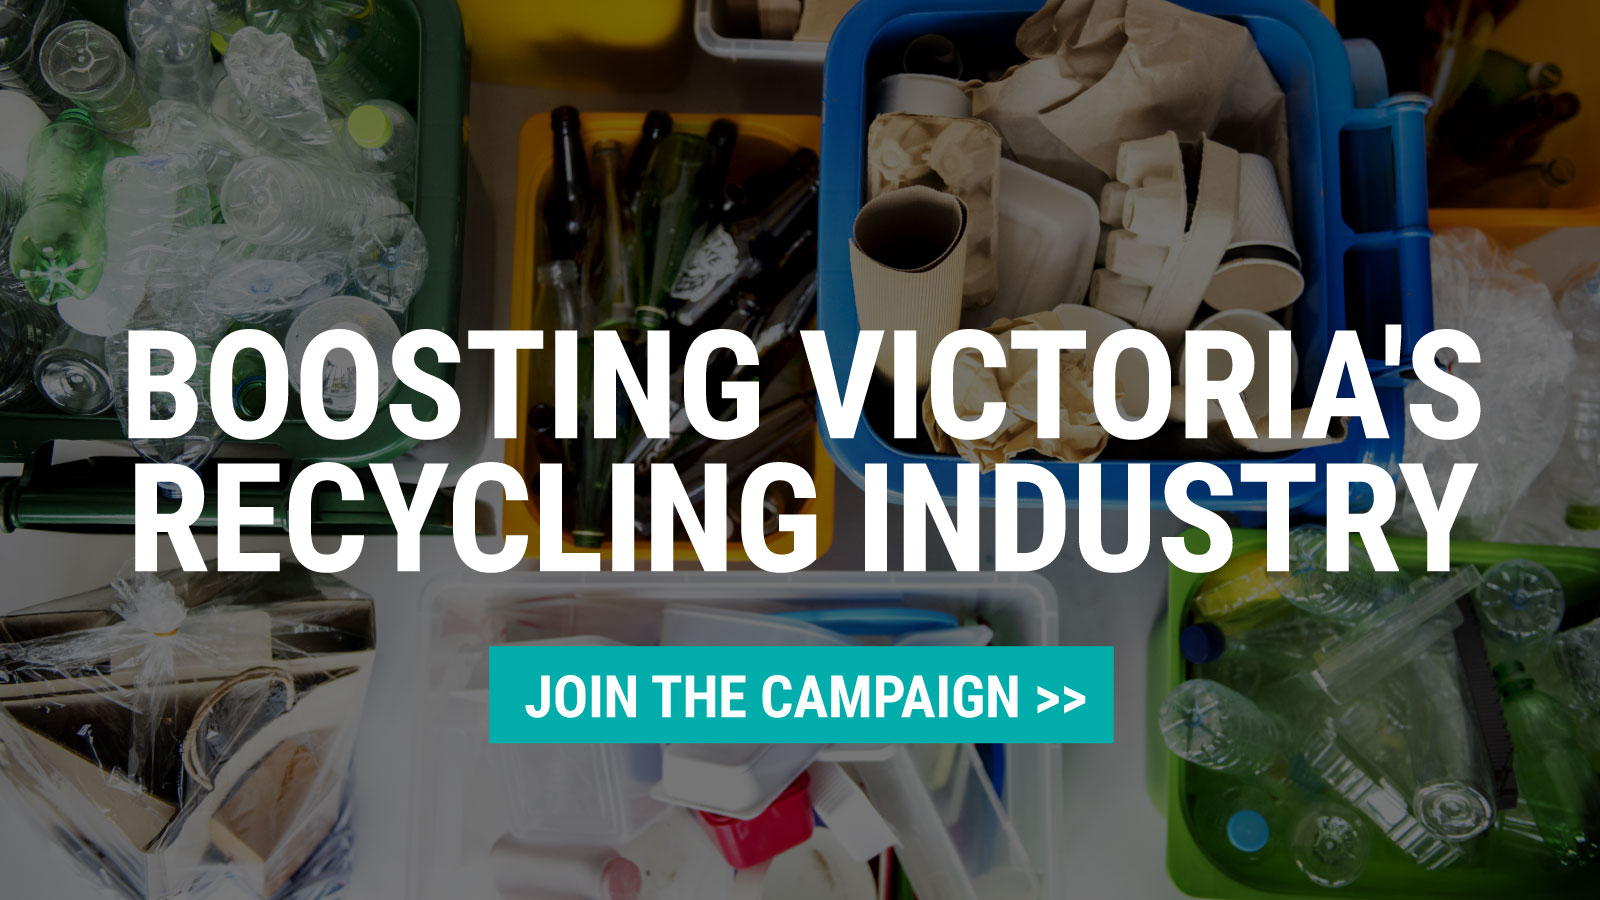 Boost Victoria's Recycling Industry